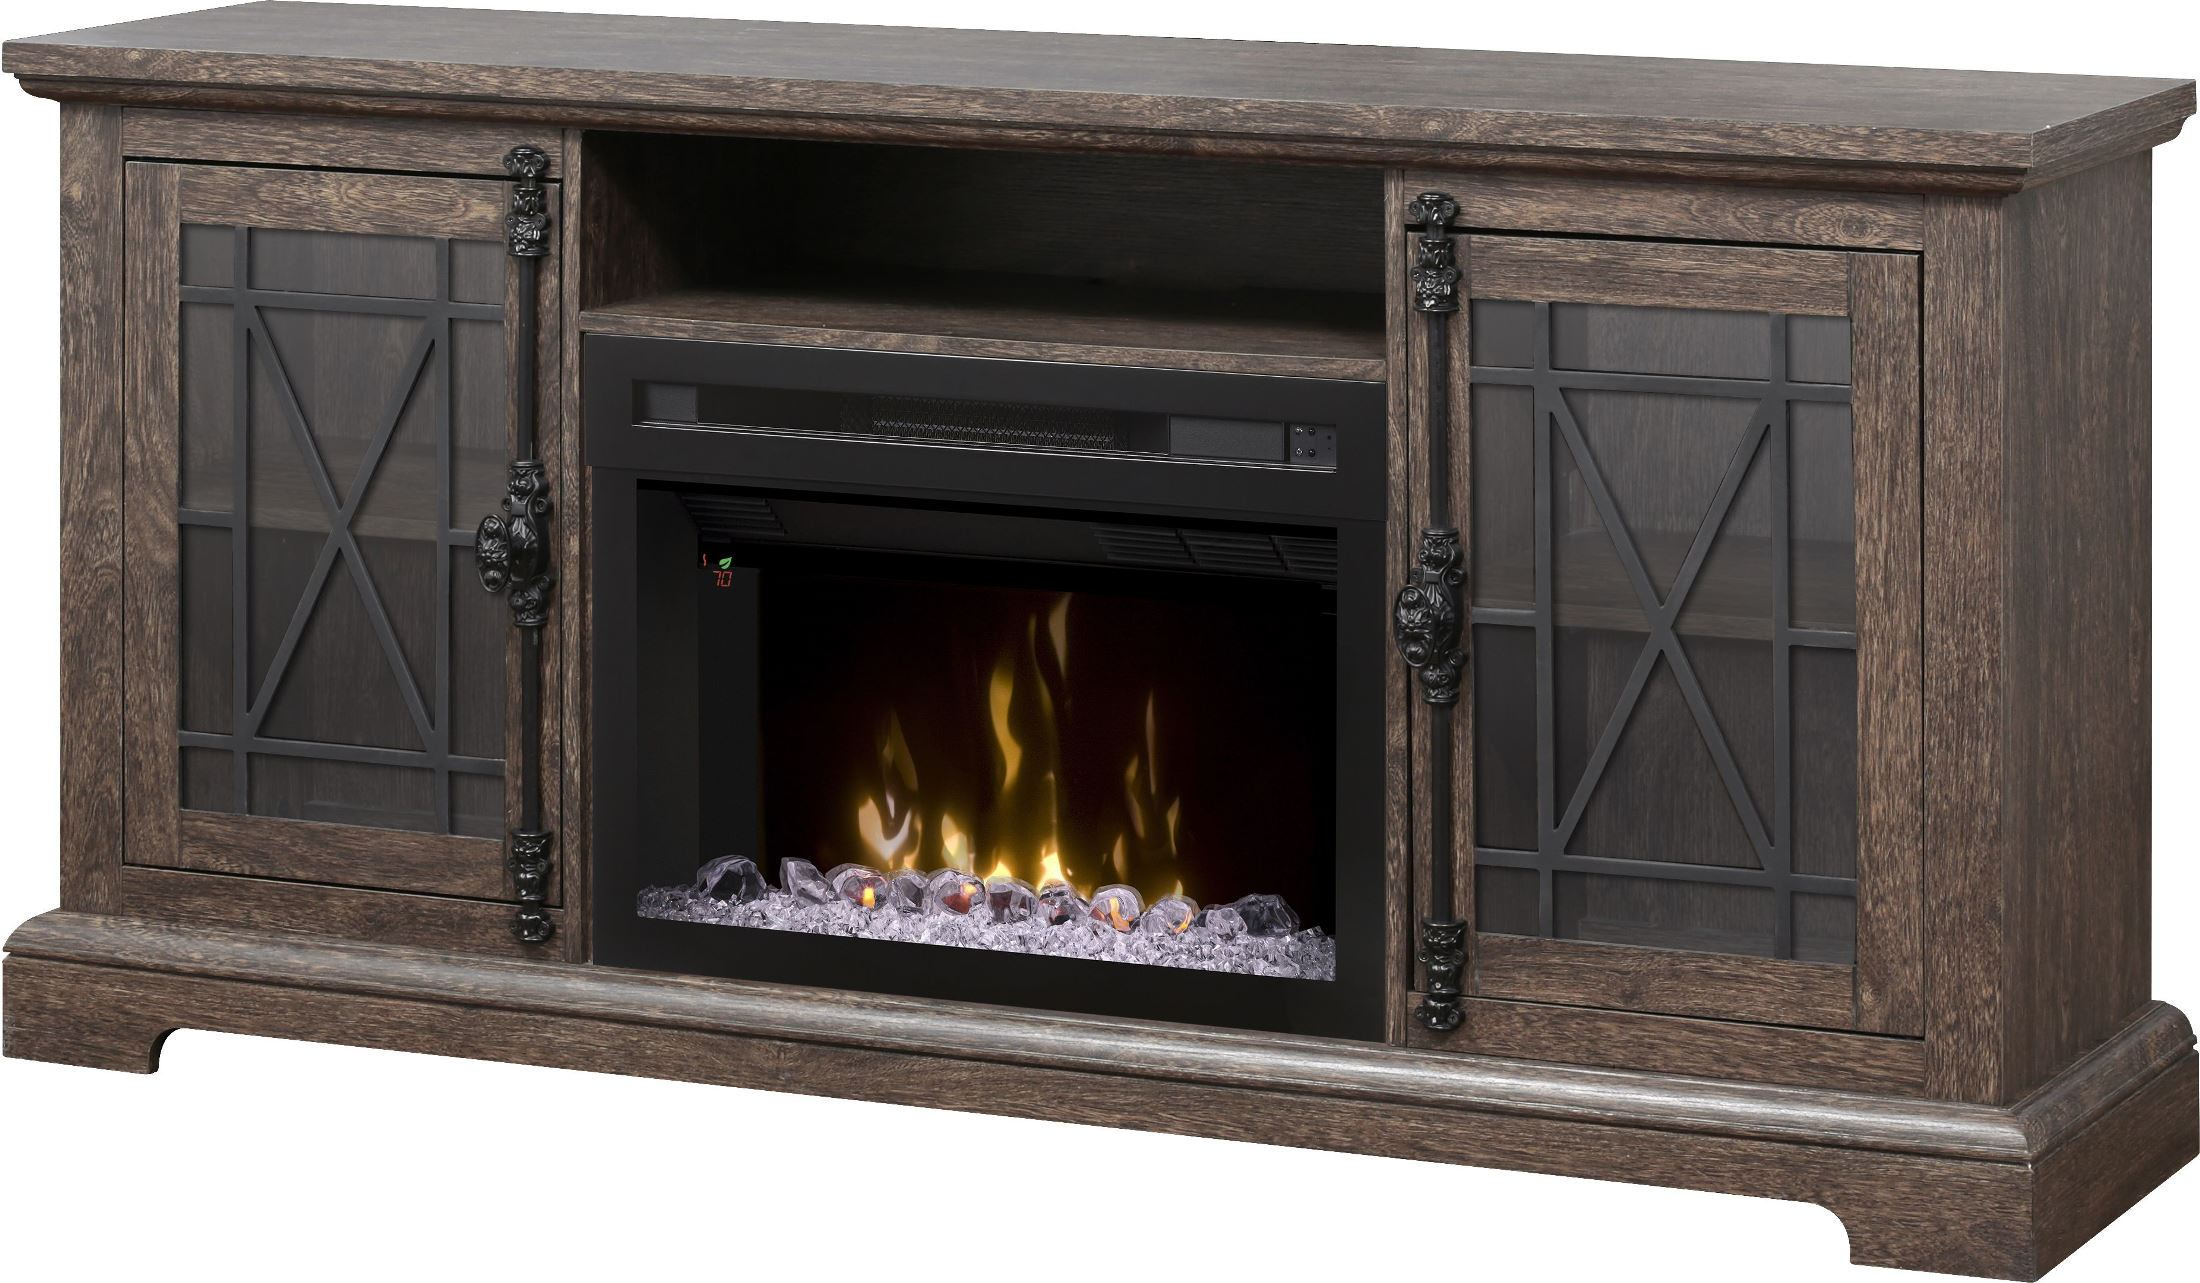 Natalie elm brown media console electric fireplace with - Going to bed with embers in fireplace ...